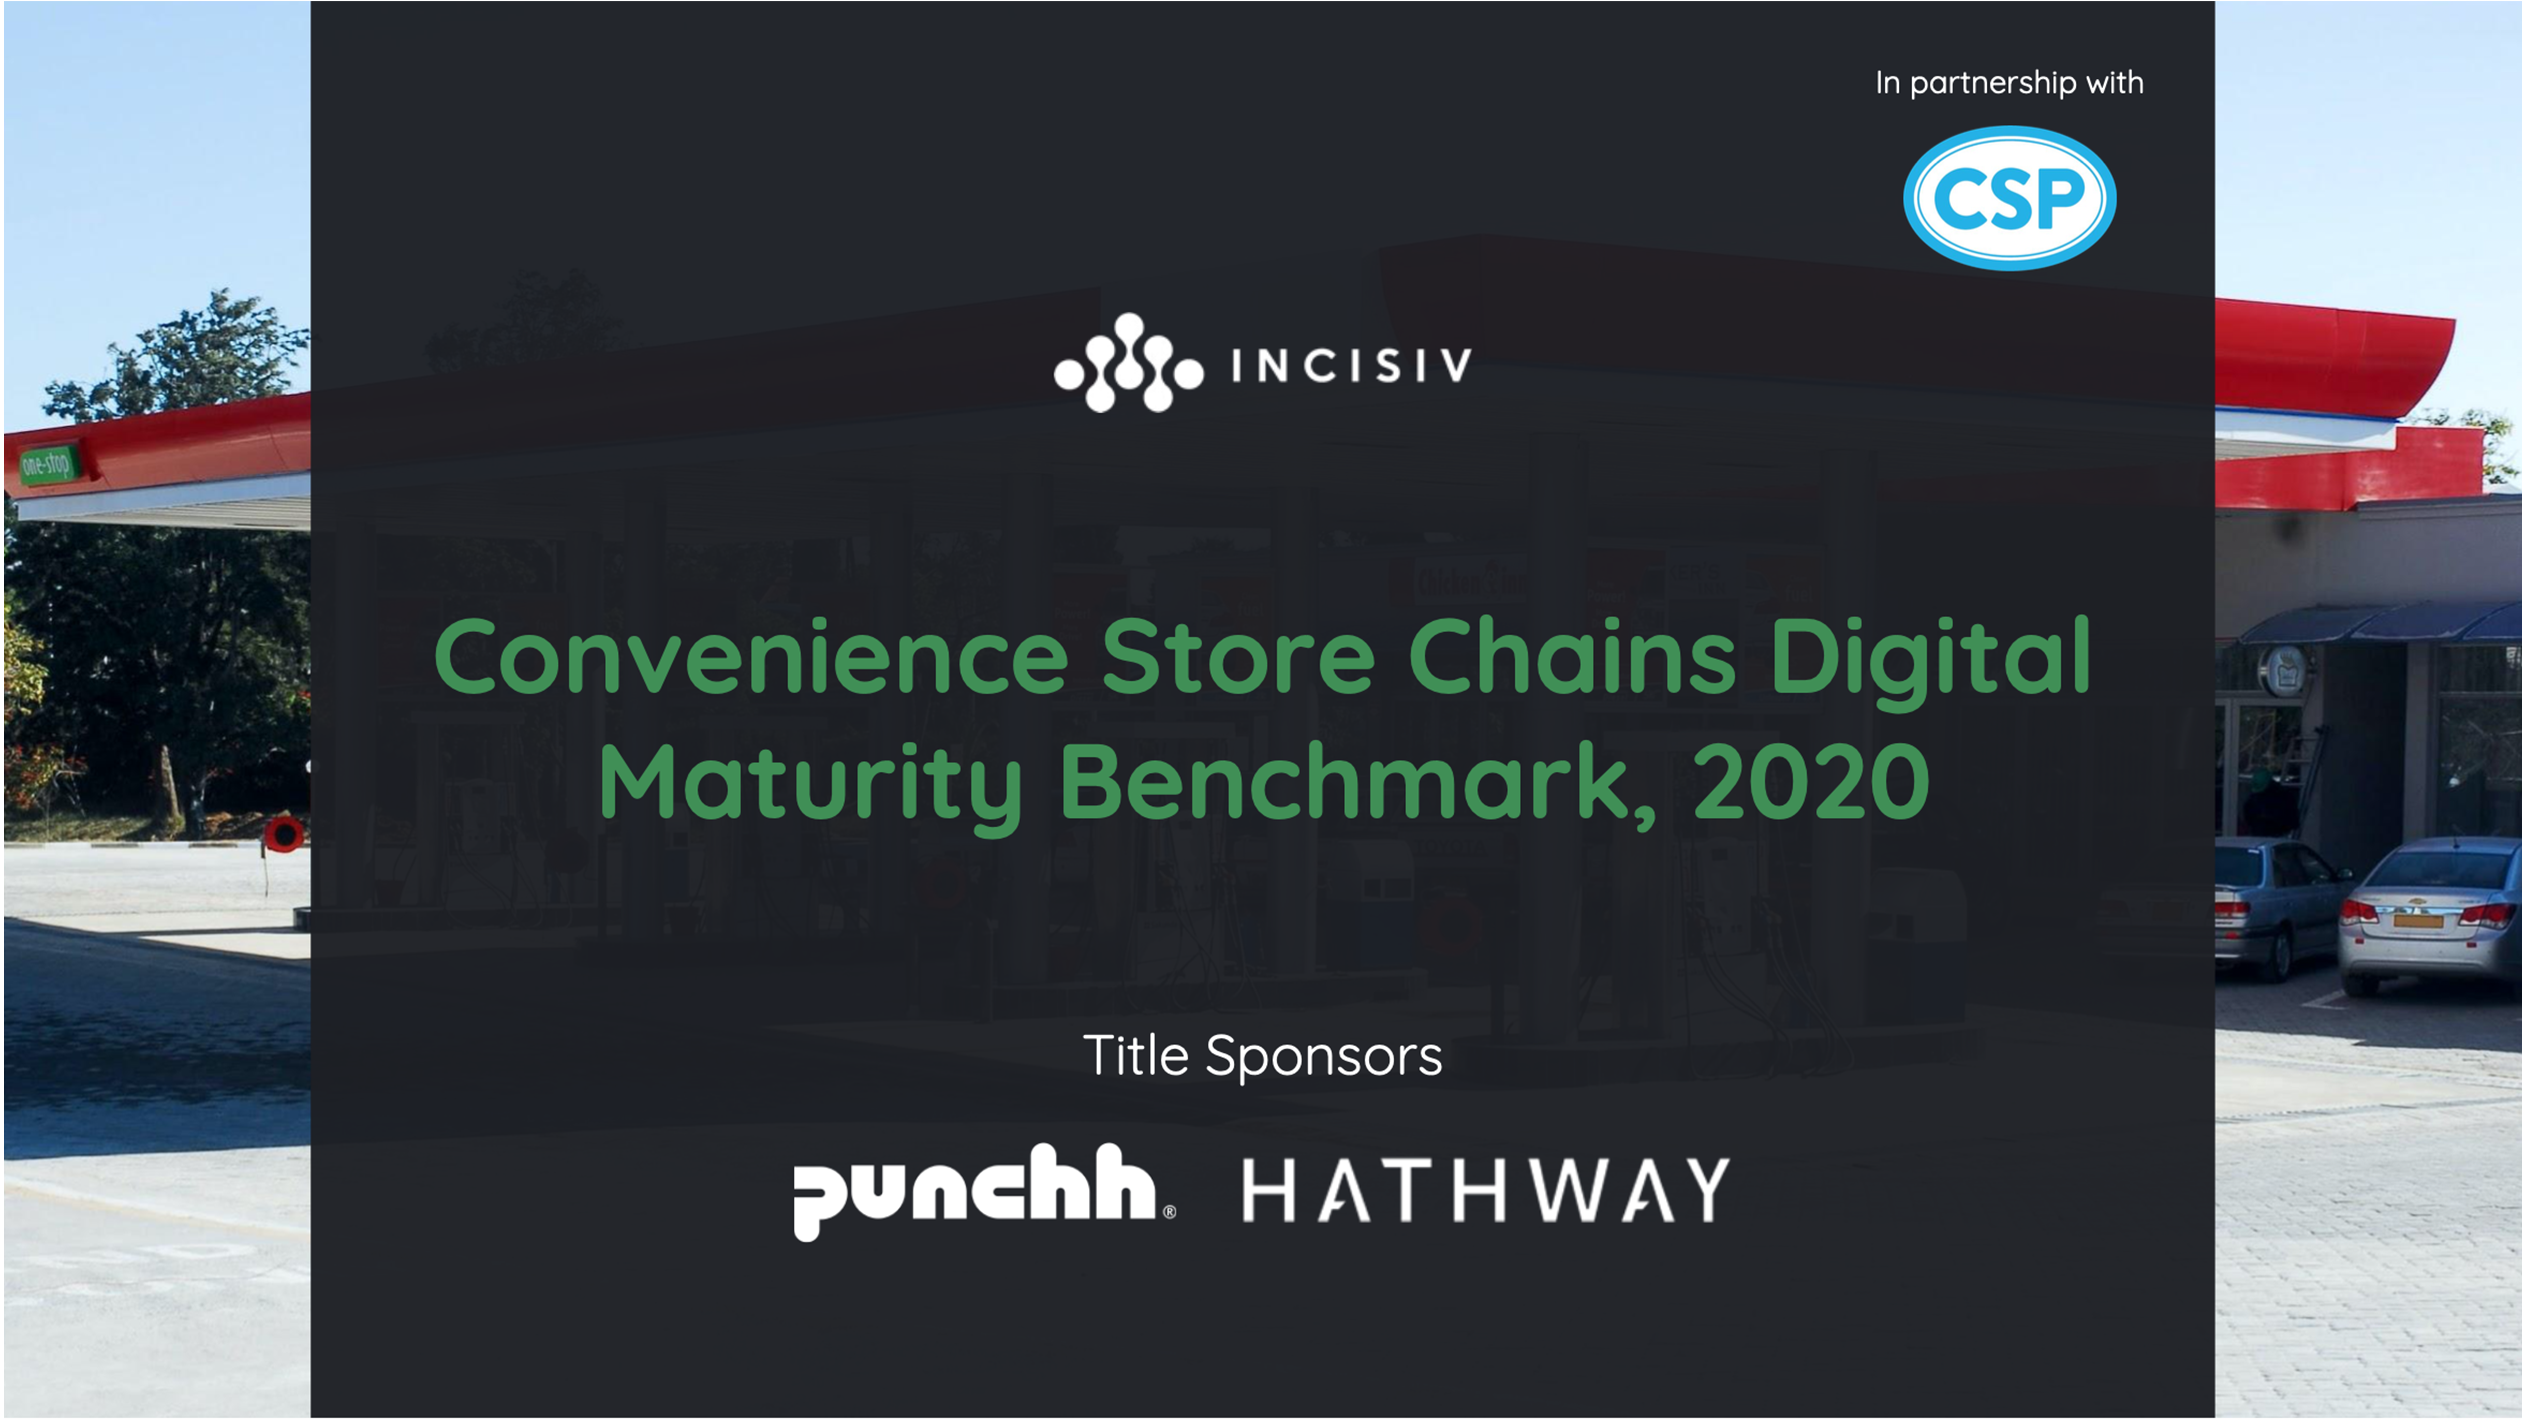 Convenience Store Chains Digital Maturity Benchmark, 2020